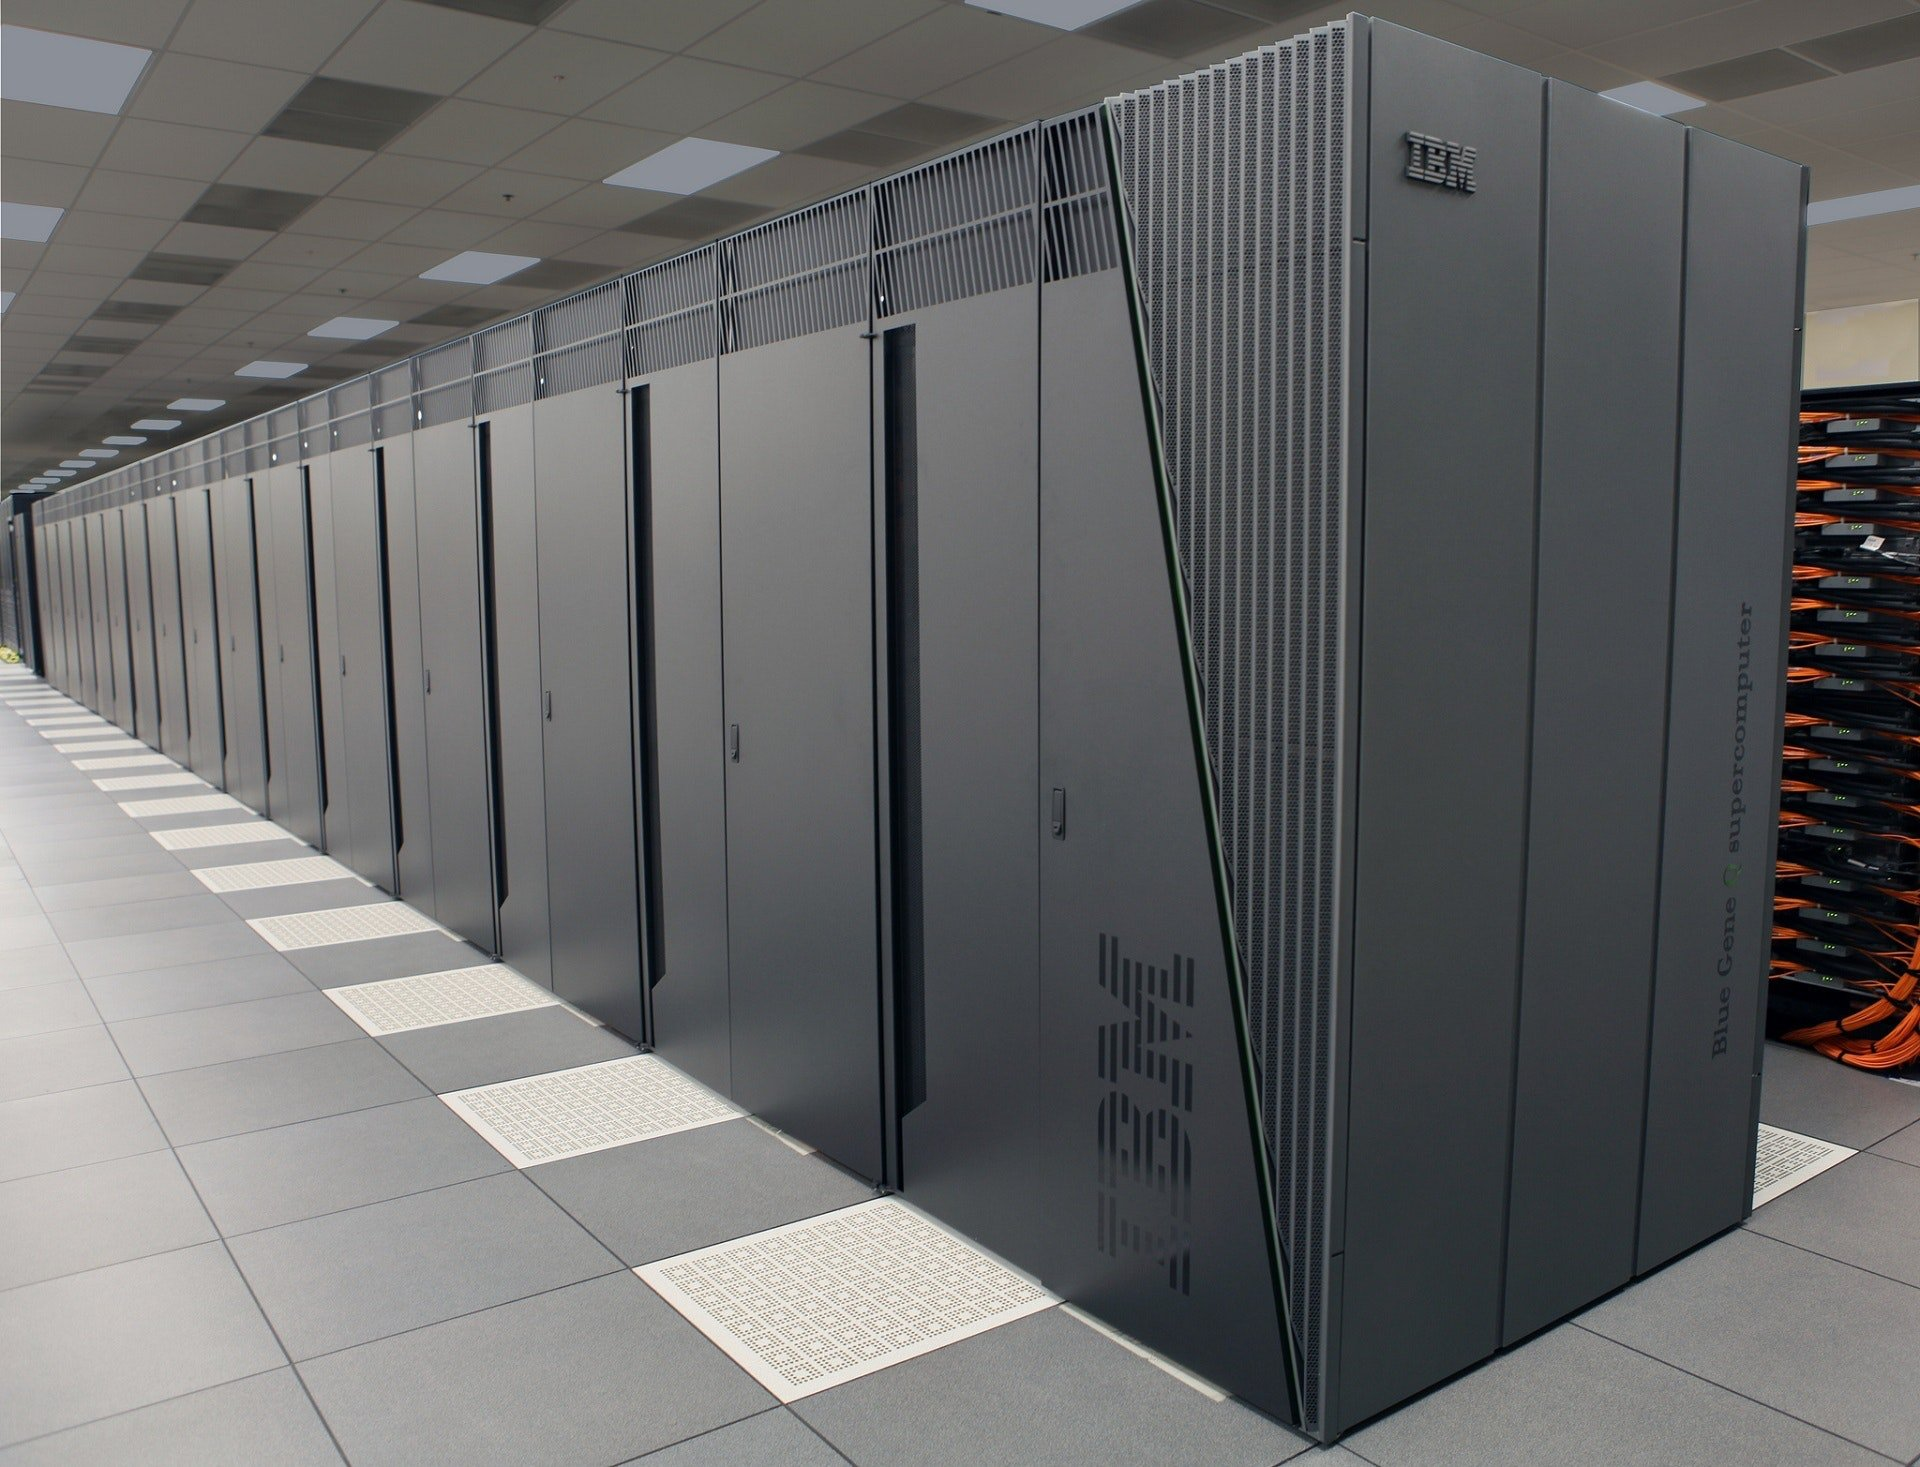 petabyte-server-data-center